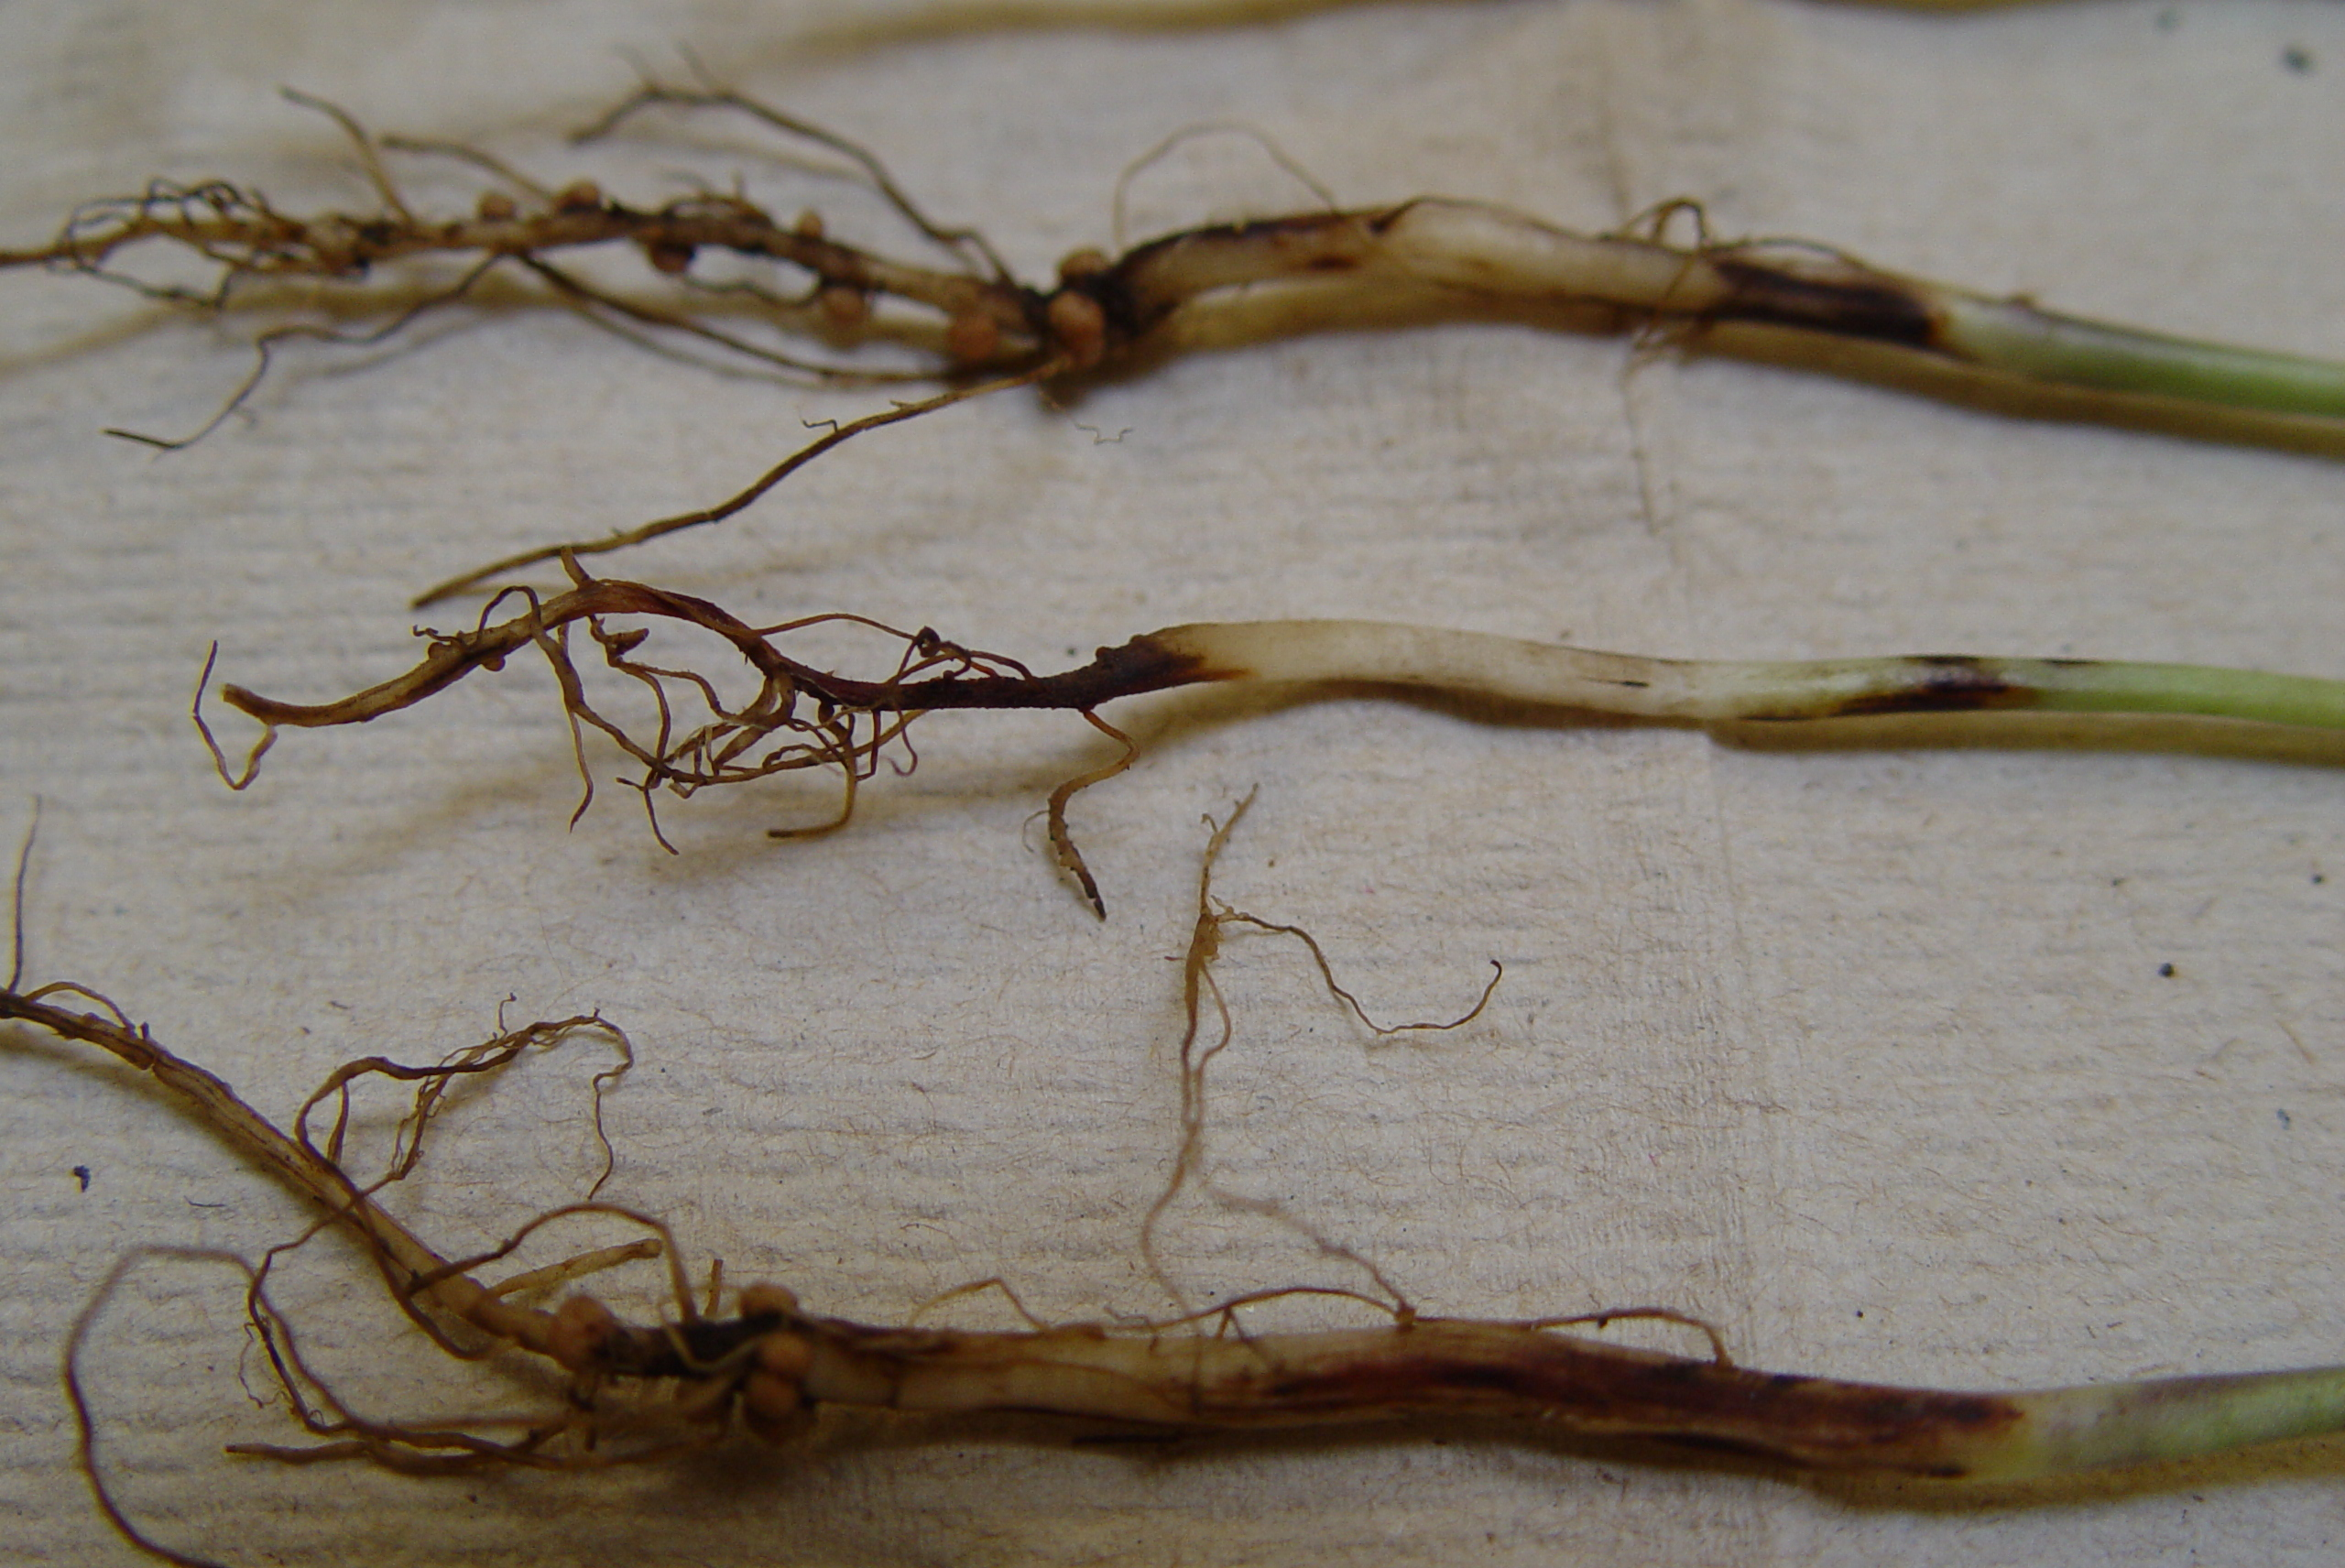 Fusarium-infected soybean seedlings.